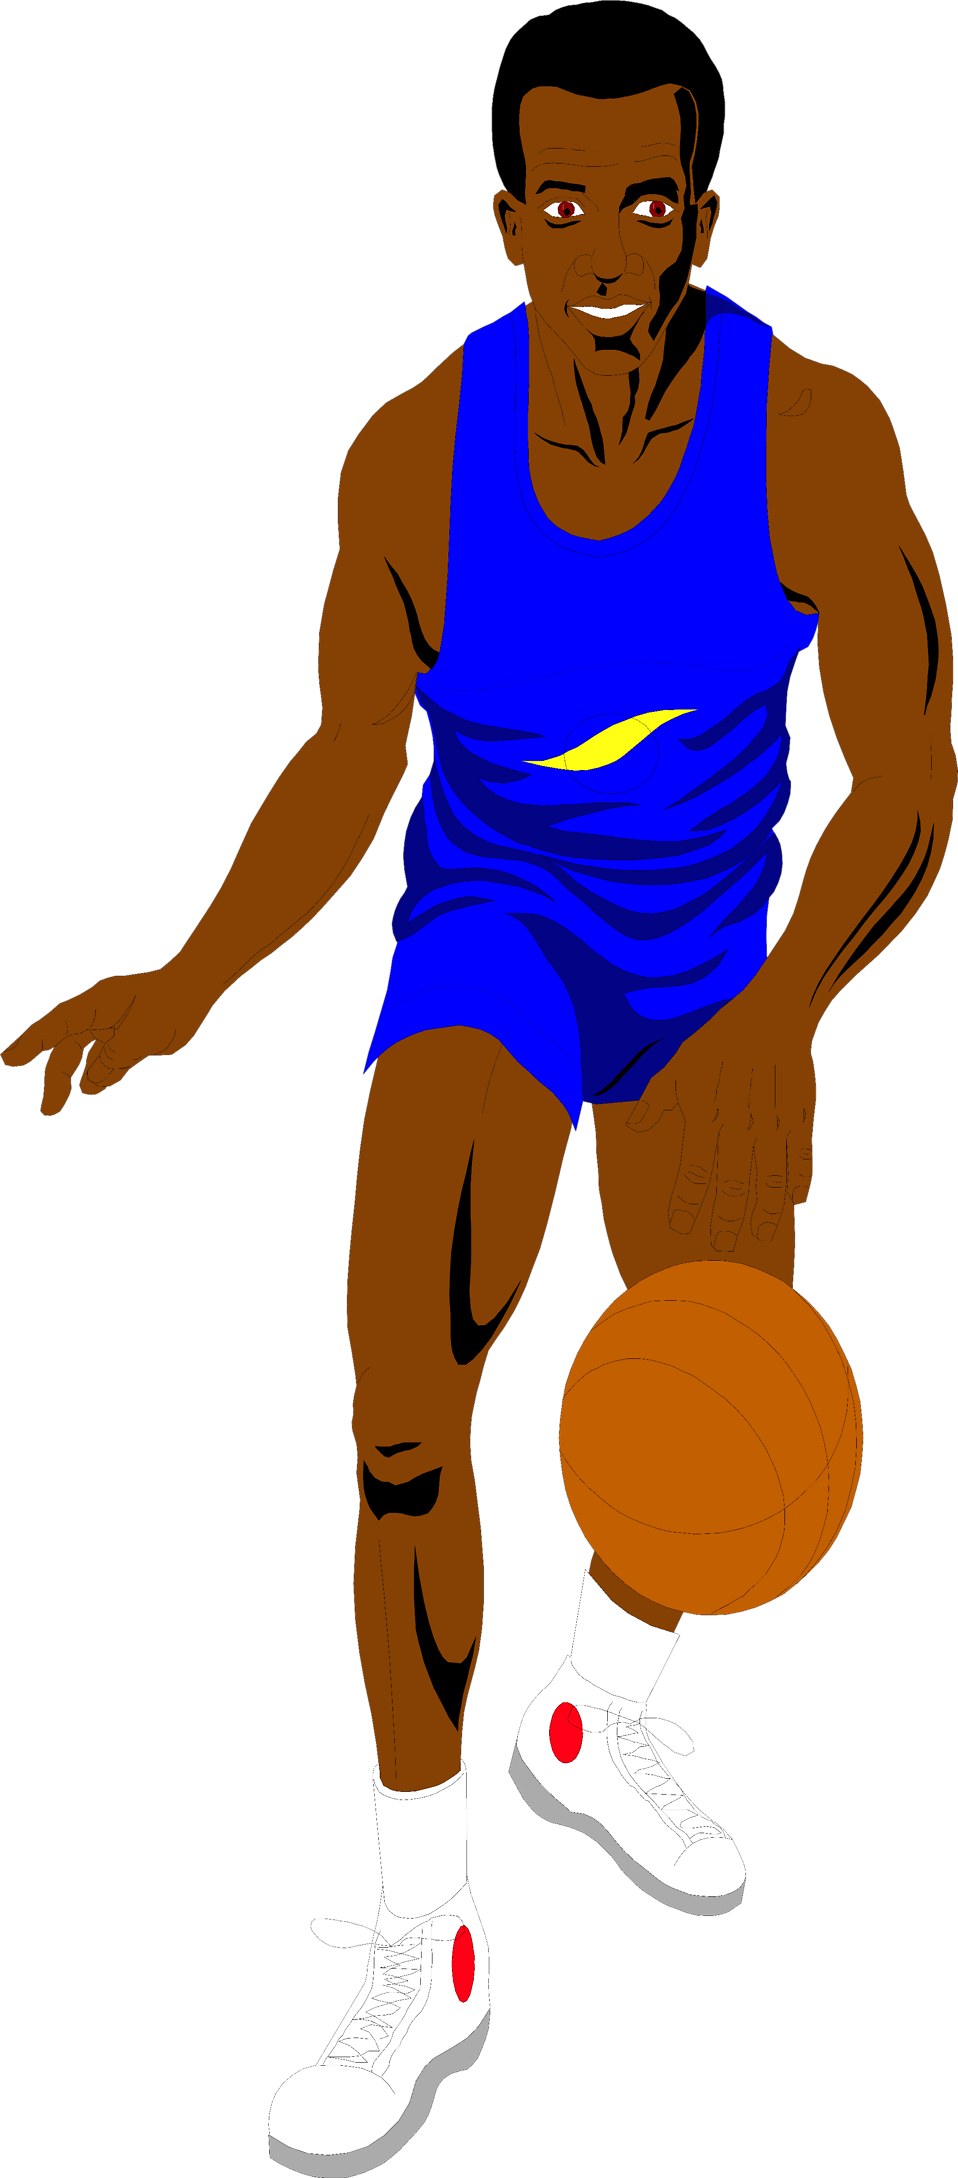 Basketball player clipart png graphic Basketball | Free Stock Photo | Illustration of an African American ... graphic